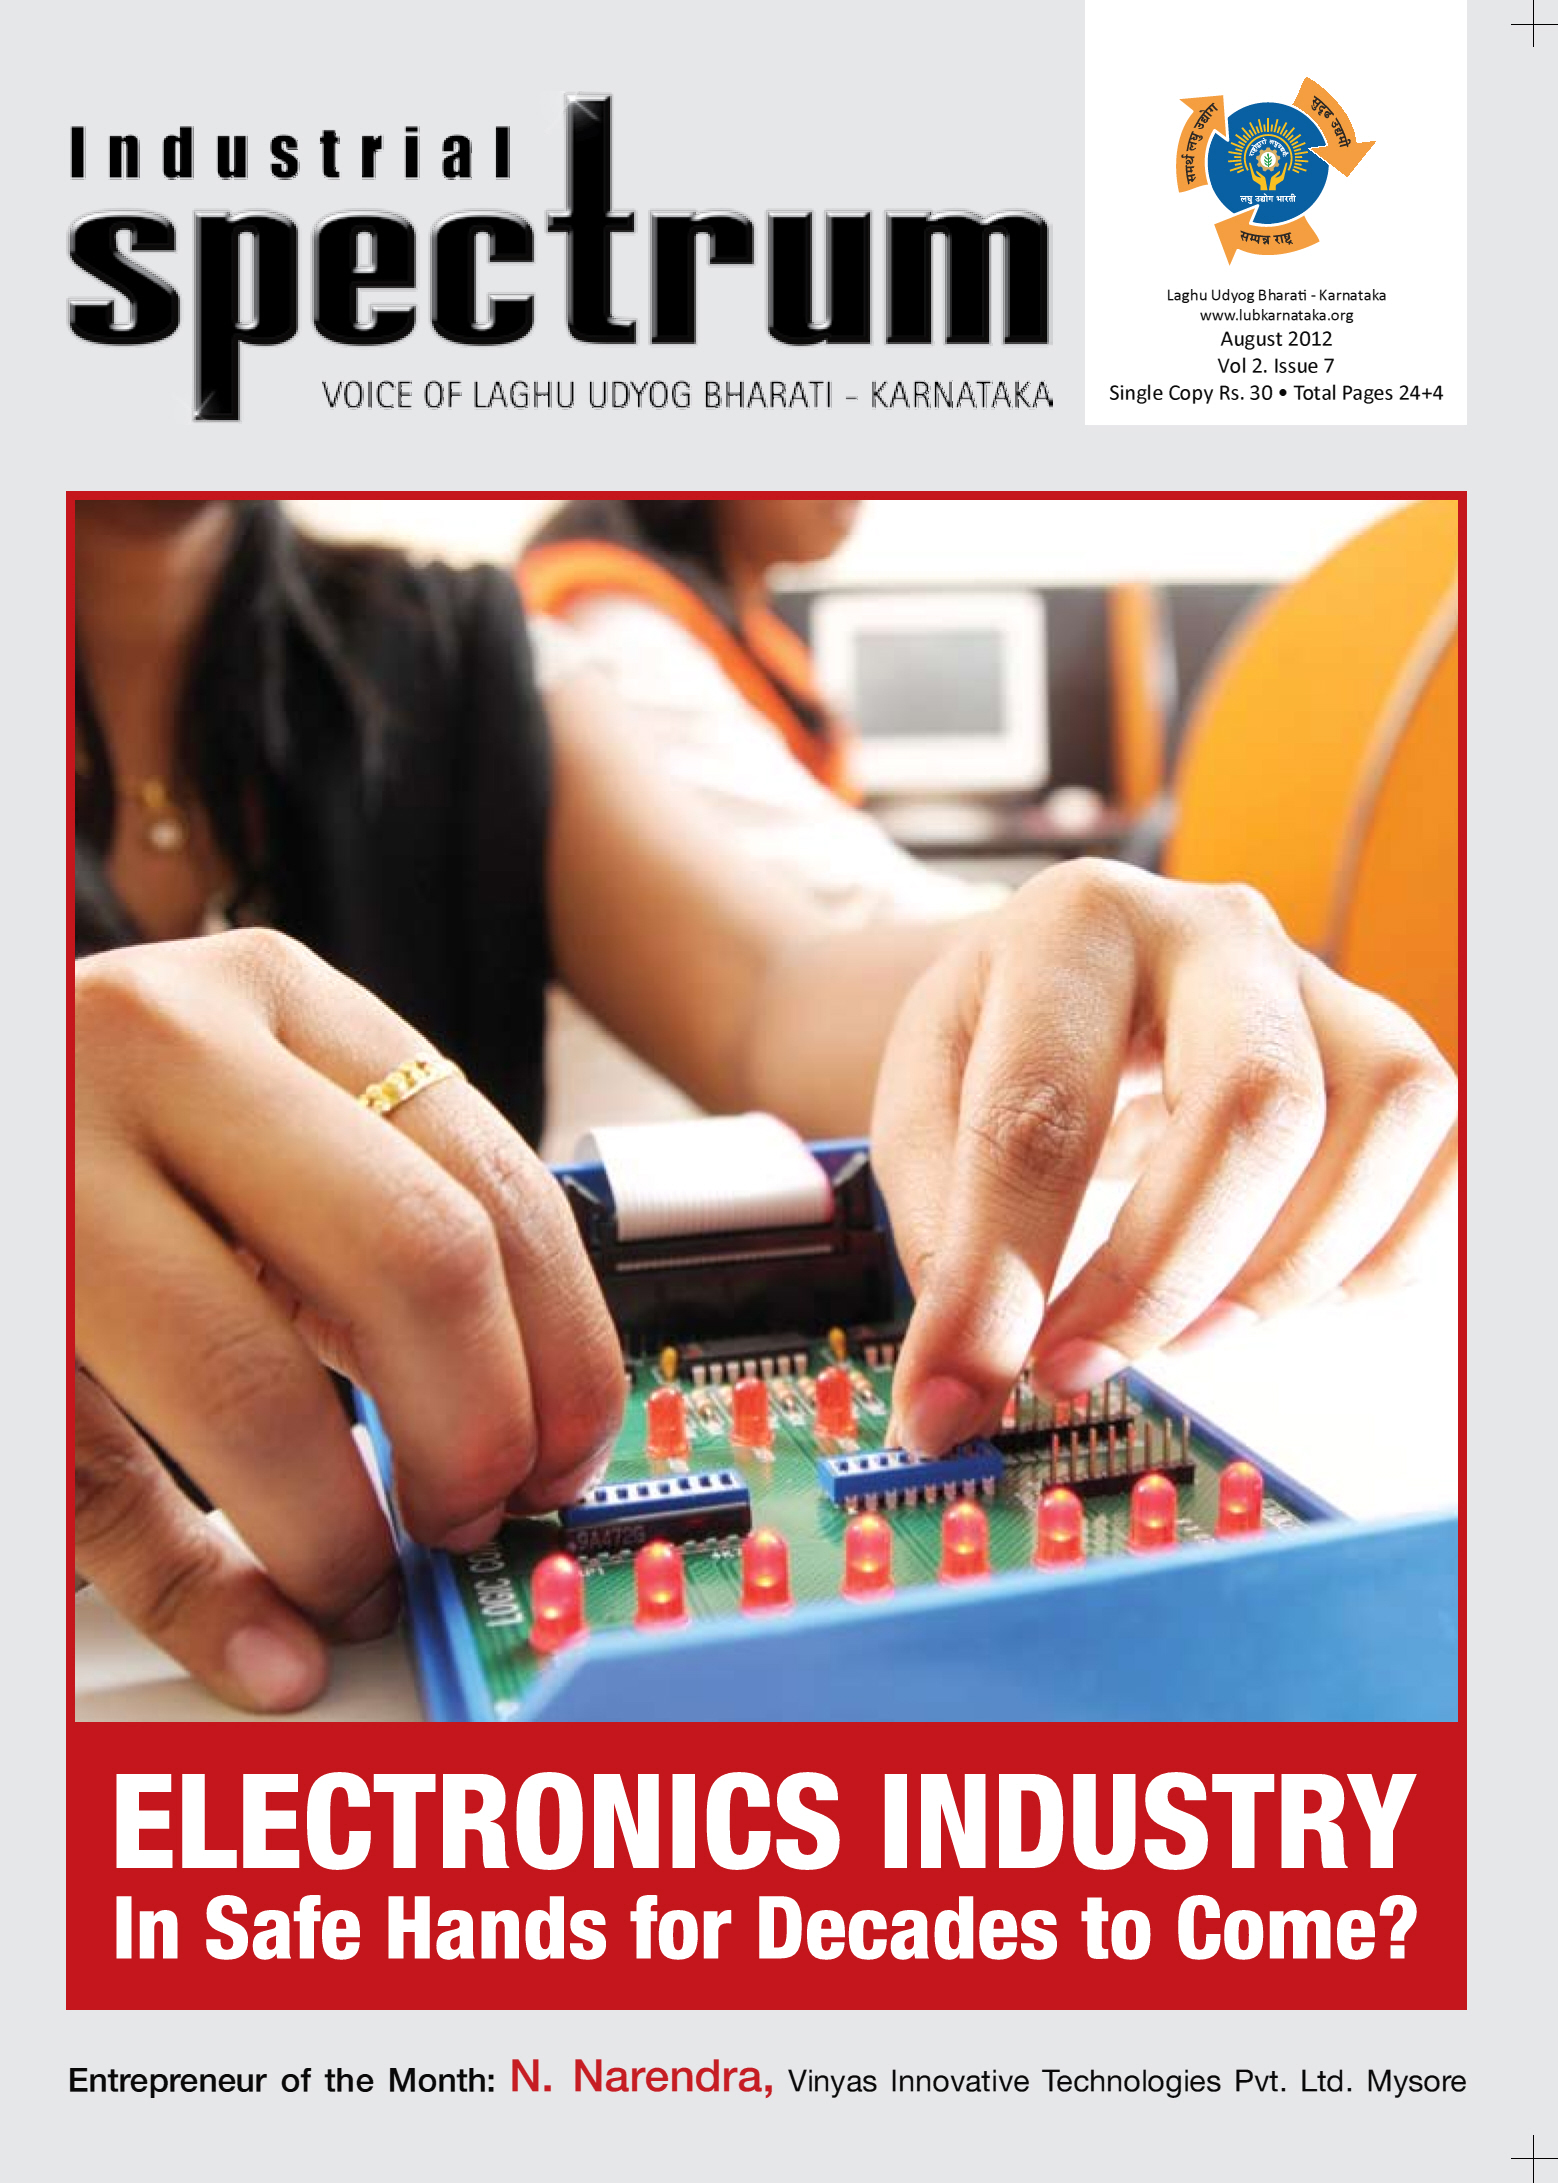 Industrial spectrum august edition   2012   cover page